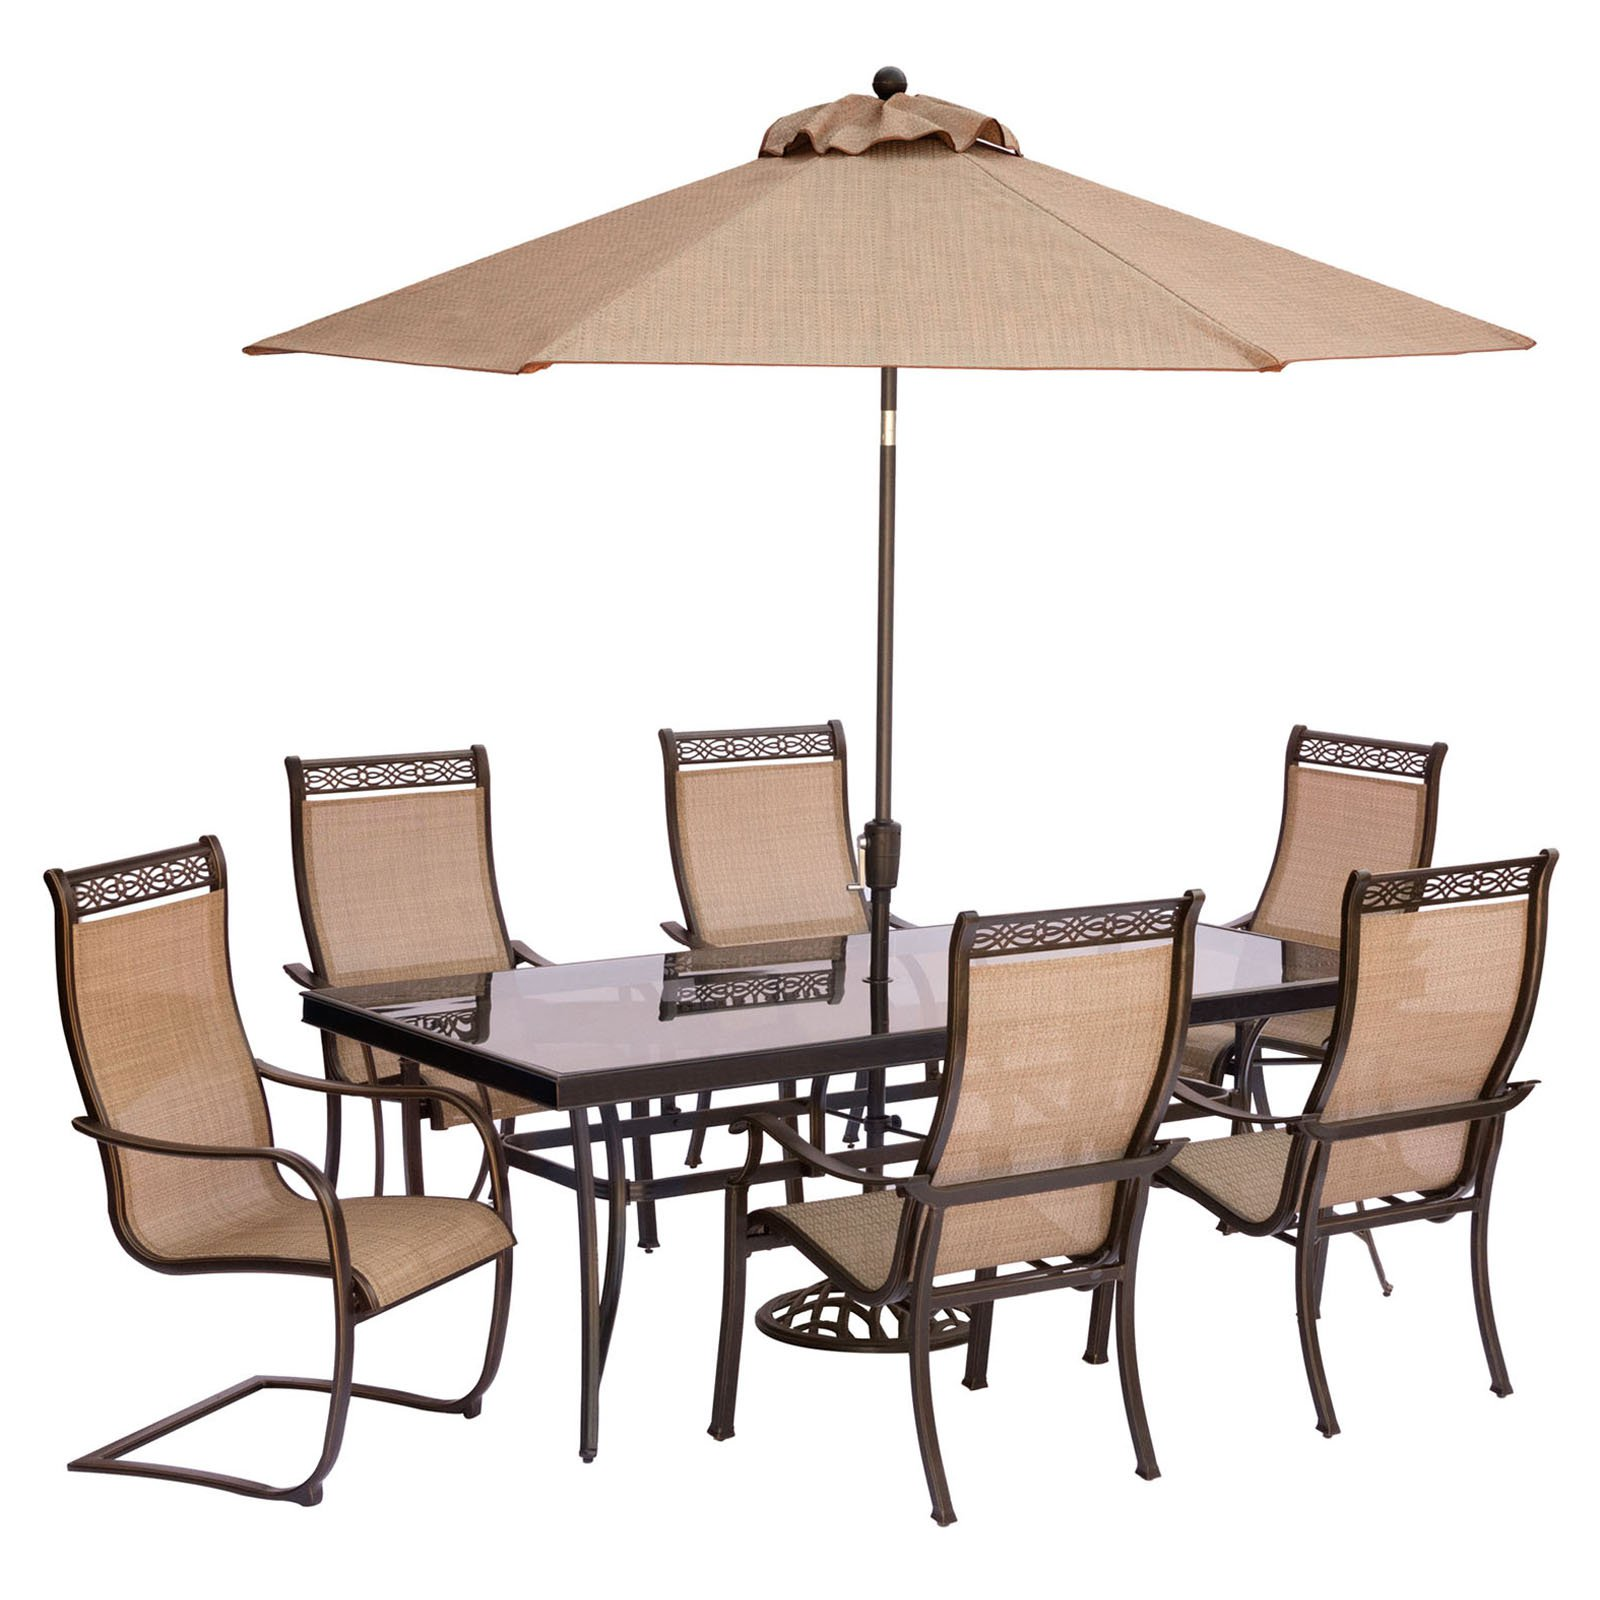 "Hanover Outdoor Monaco 7-Piece Sling Dining Set with 42"" x 84"" Glass-Top Table, 4 Stationary Chairs and 2 C-Spring Chairs plus Umbrella with Stand, Cedar"